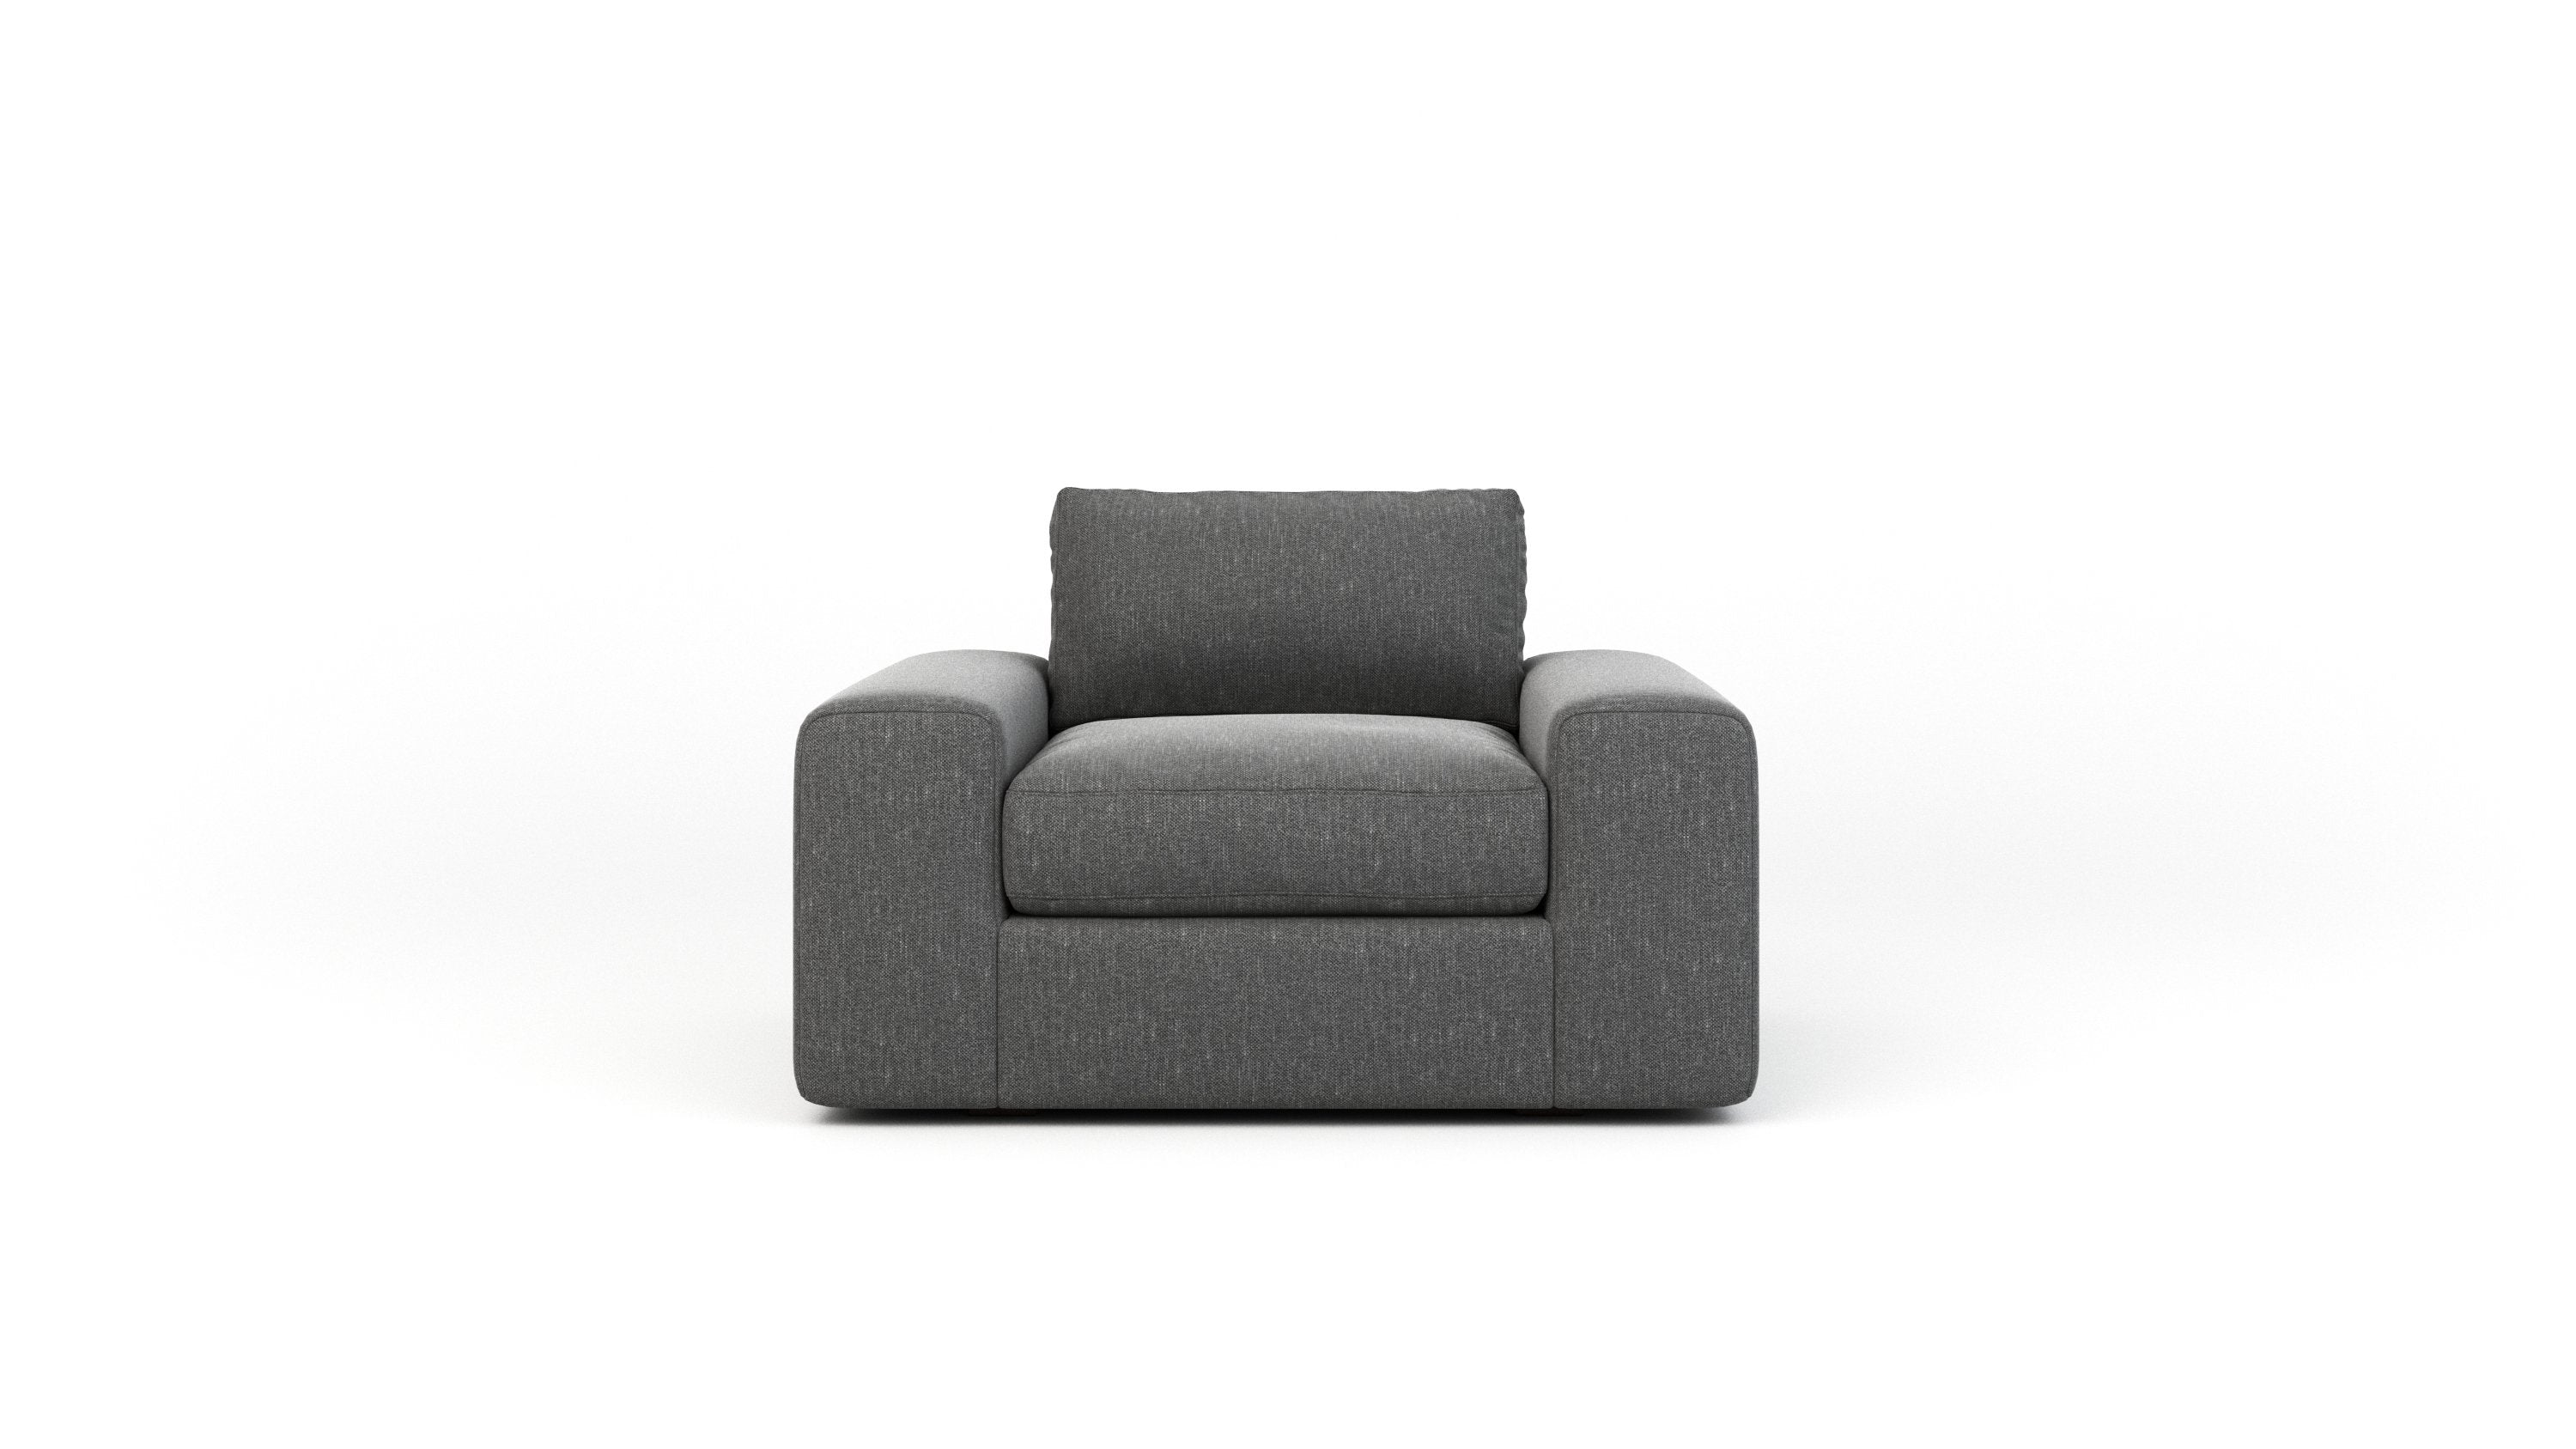 OG Couch Potato Chair